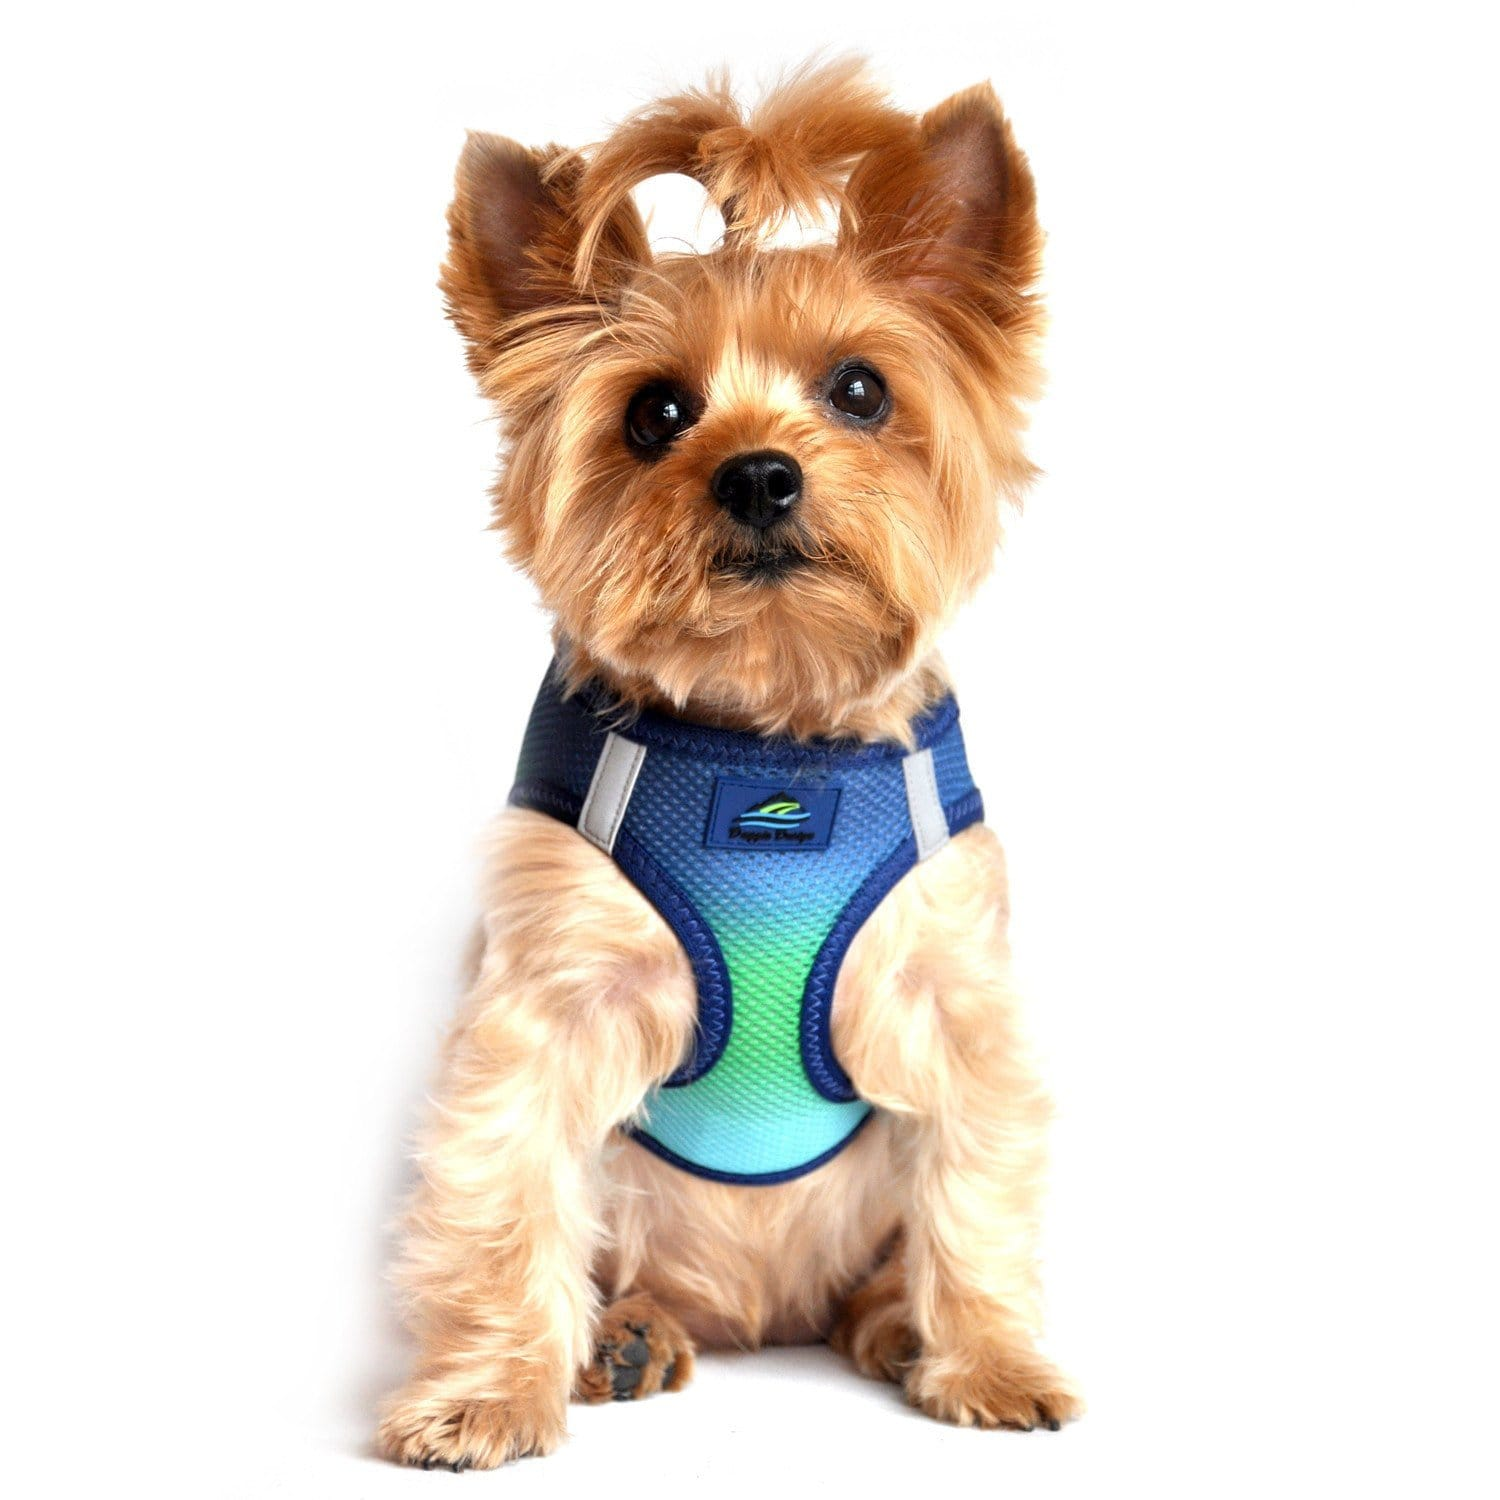 Step-in dog harness - Northern Lights